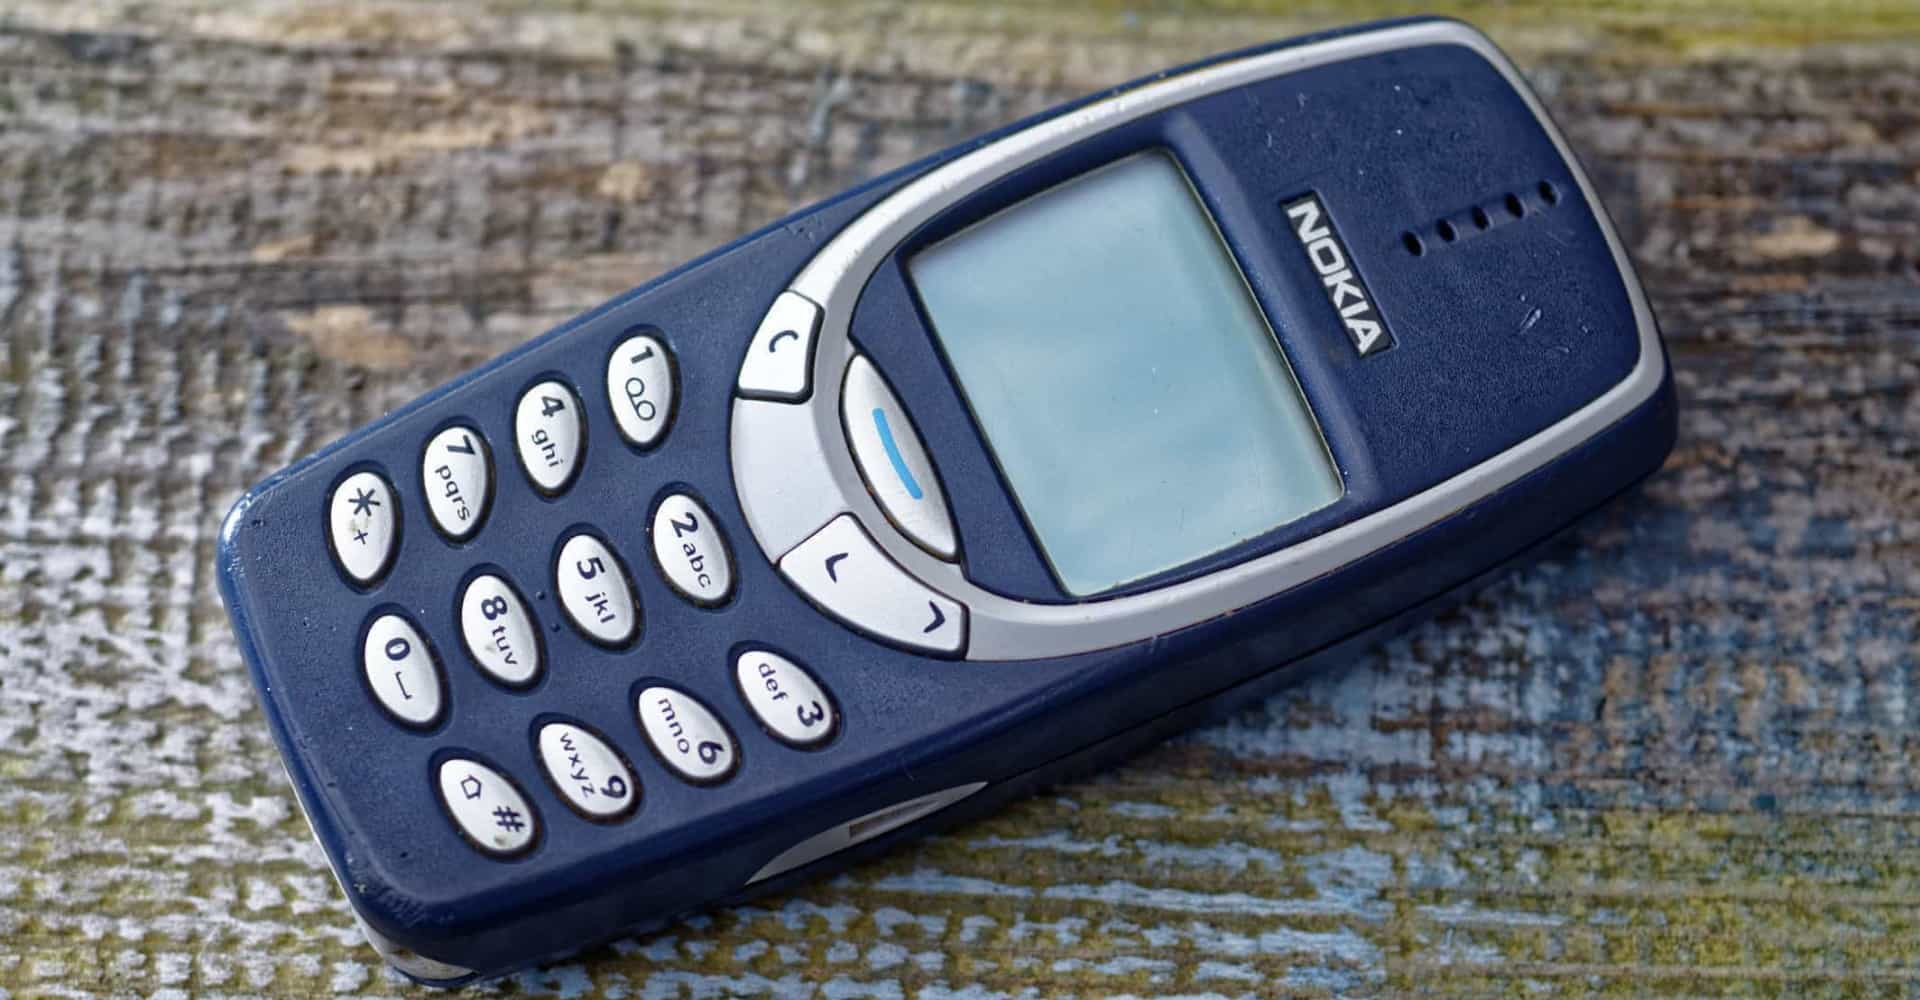 The story behind the Nokia ringtone that everyone knows